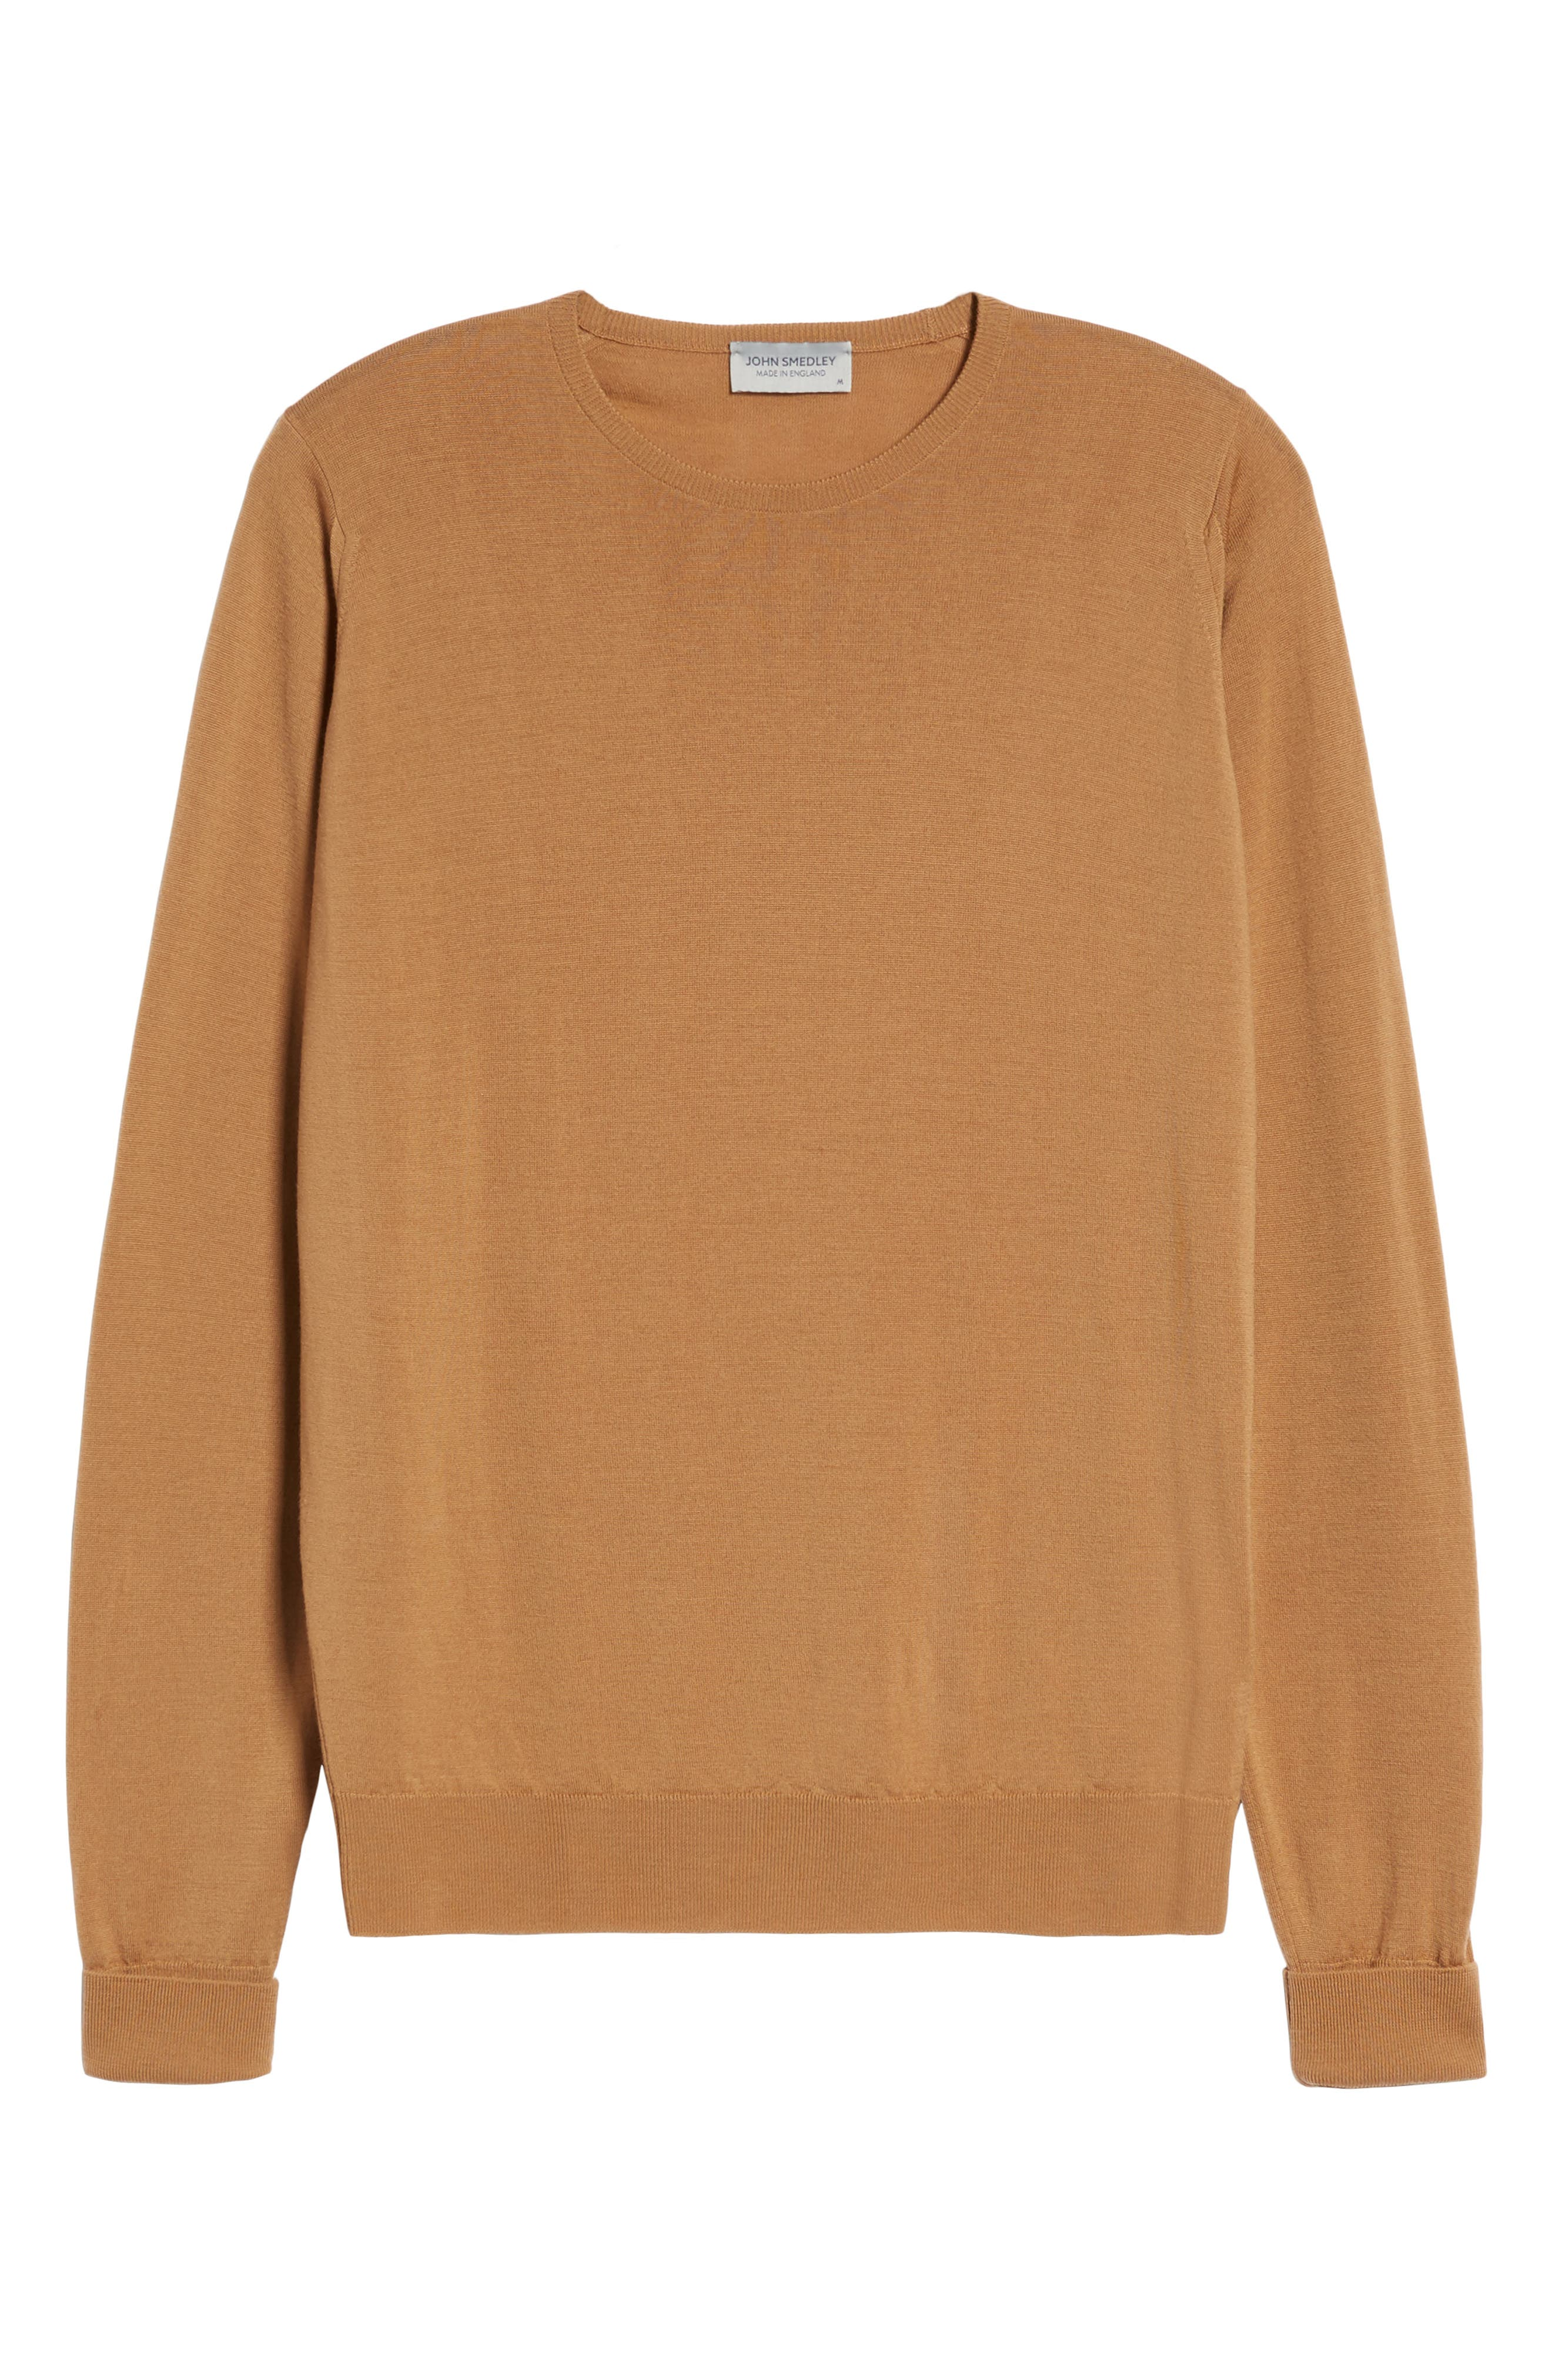 'Marcus' Easy Fit Crewneck Wool Sweater,                             Alternate thumbnail 6, color,                             CAMEL